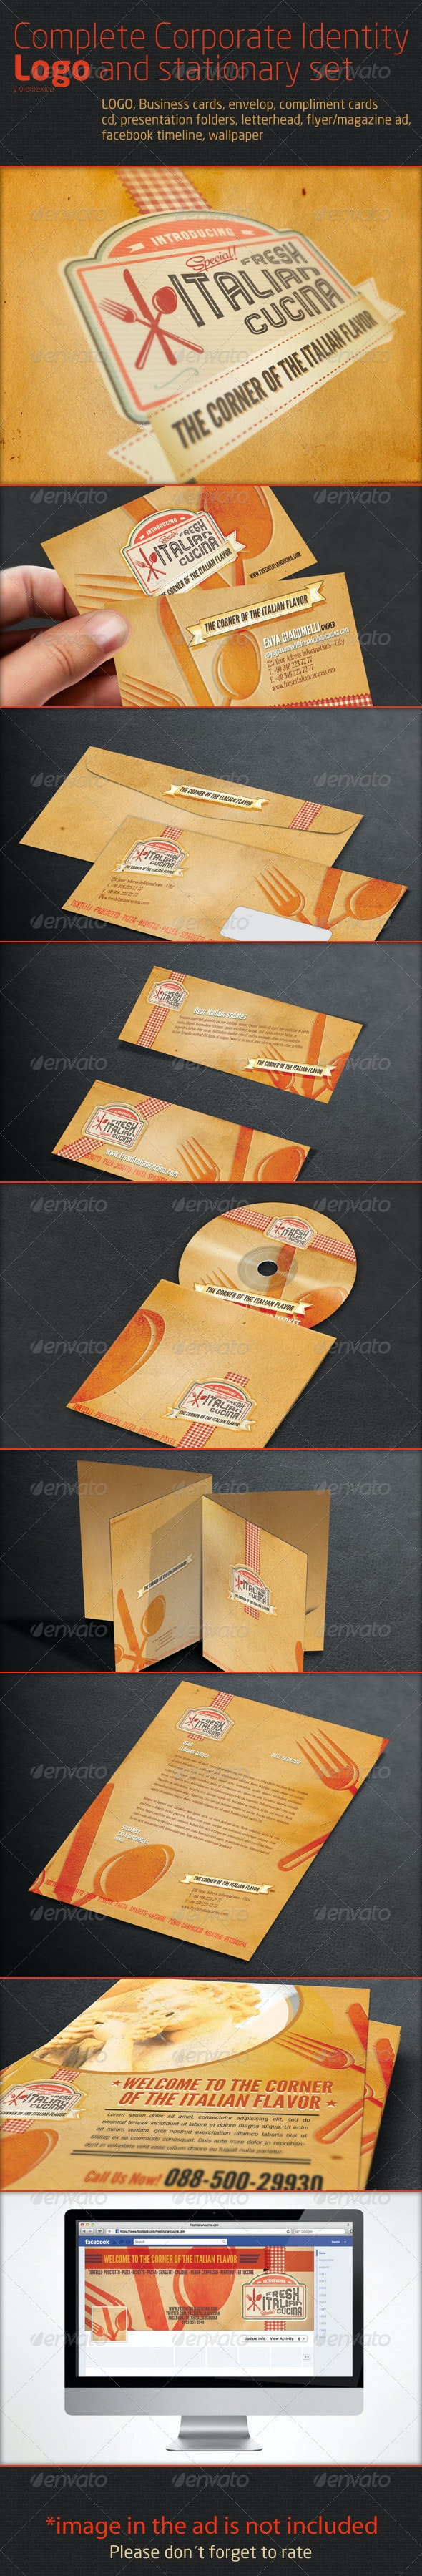 Complete Corporate Identity Logo and stationary se - Stationery Print Templates